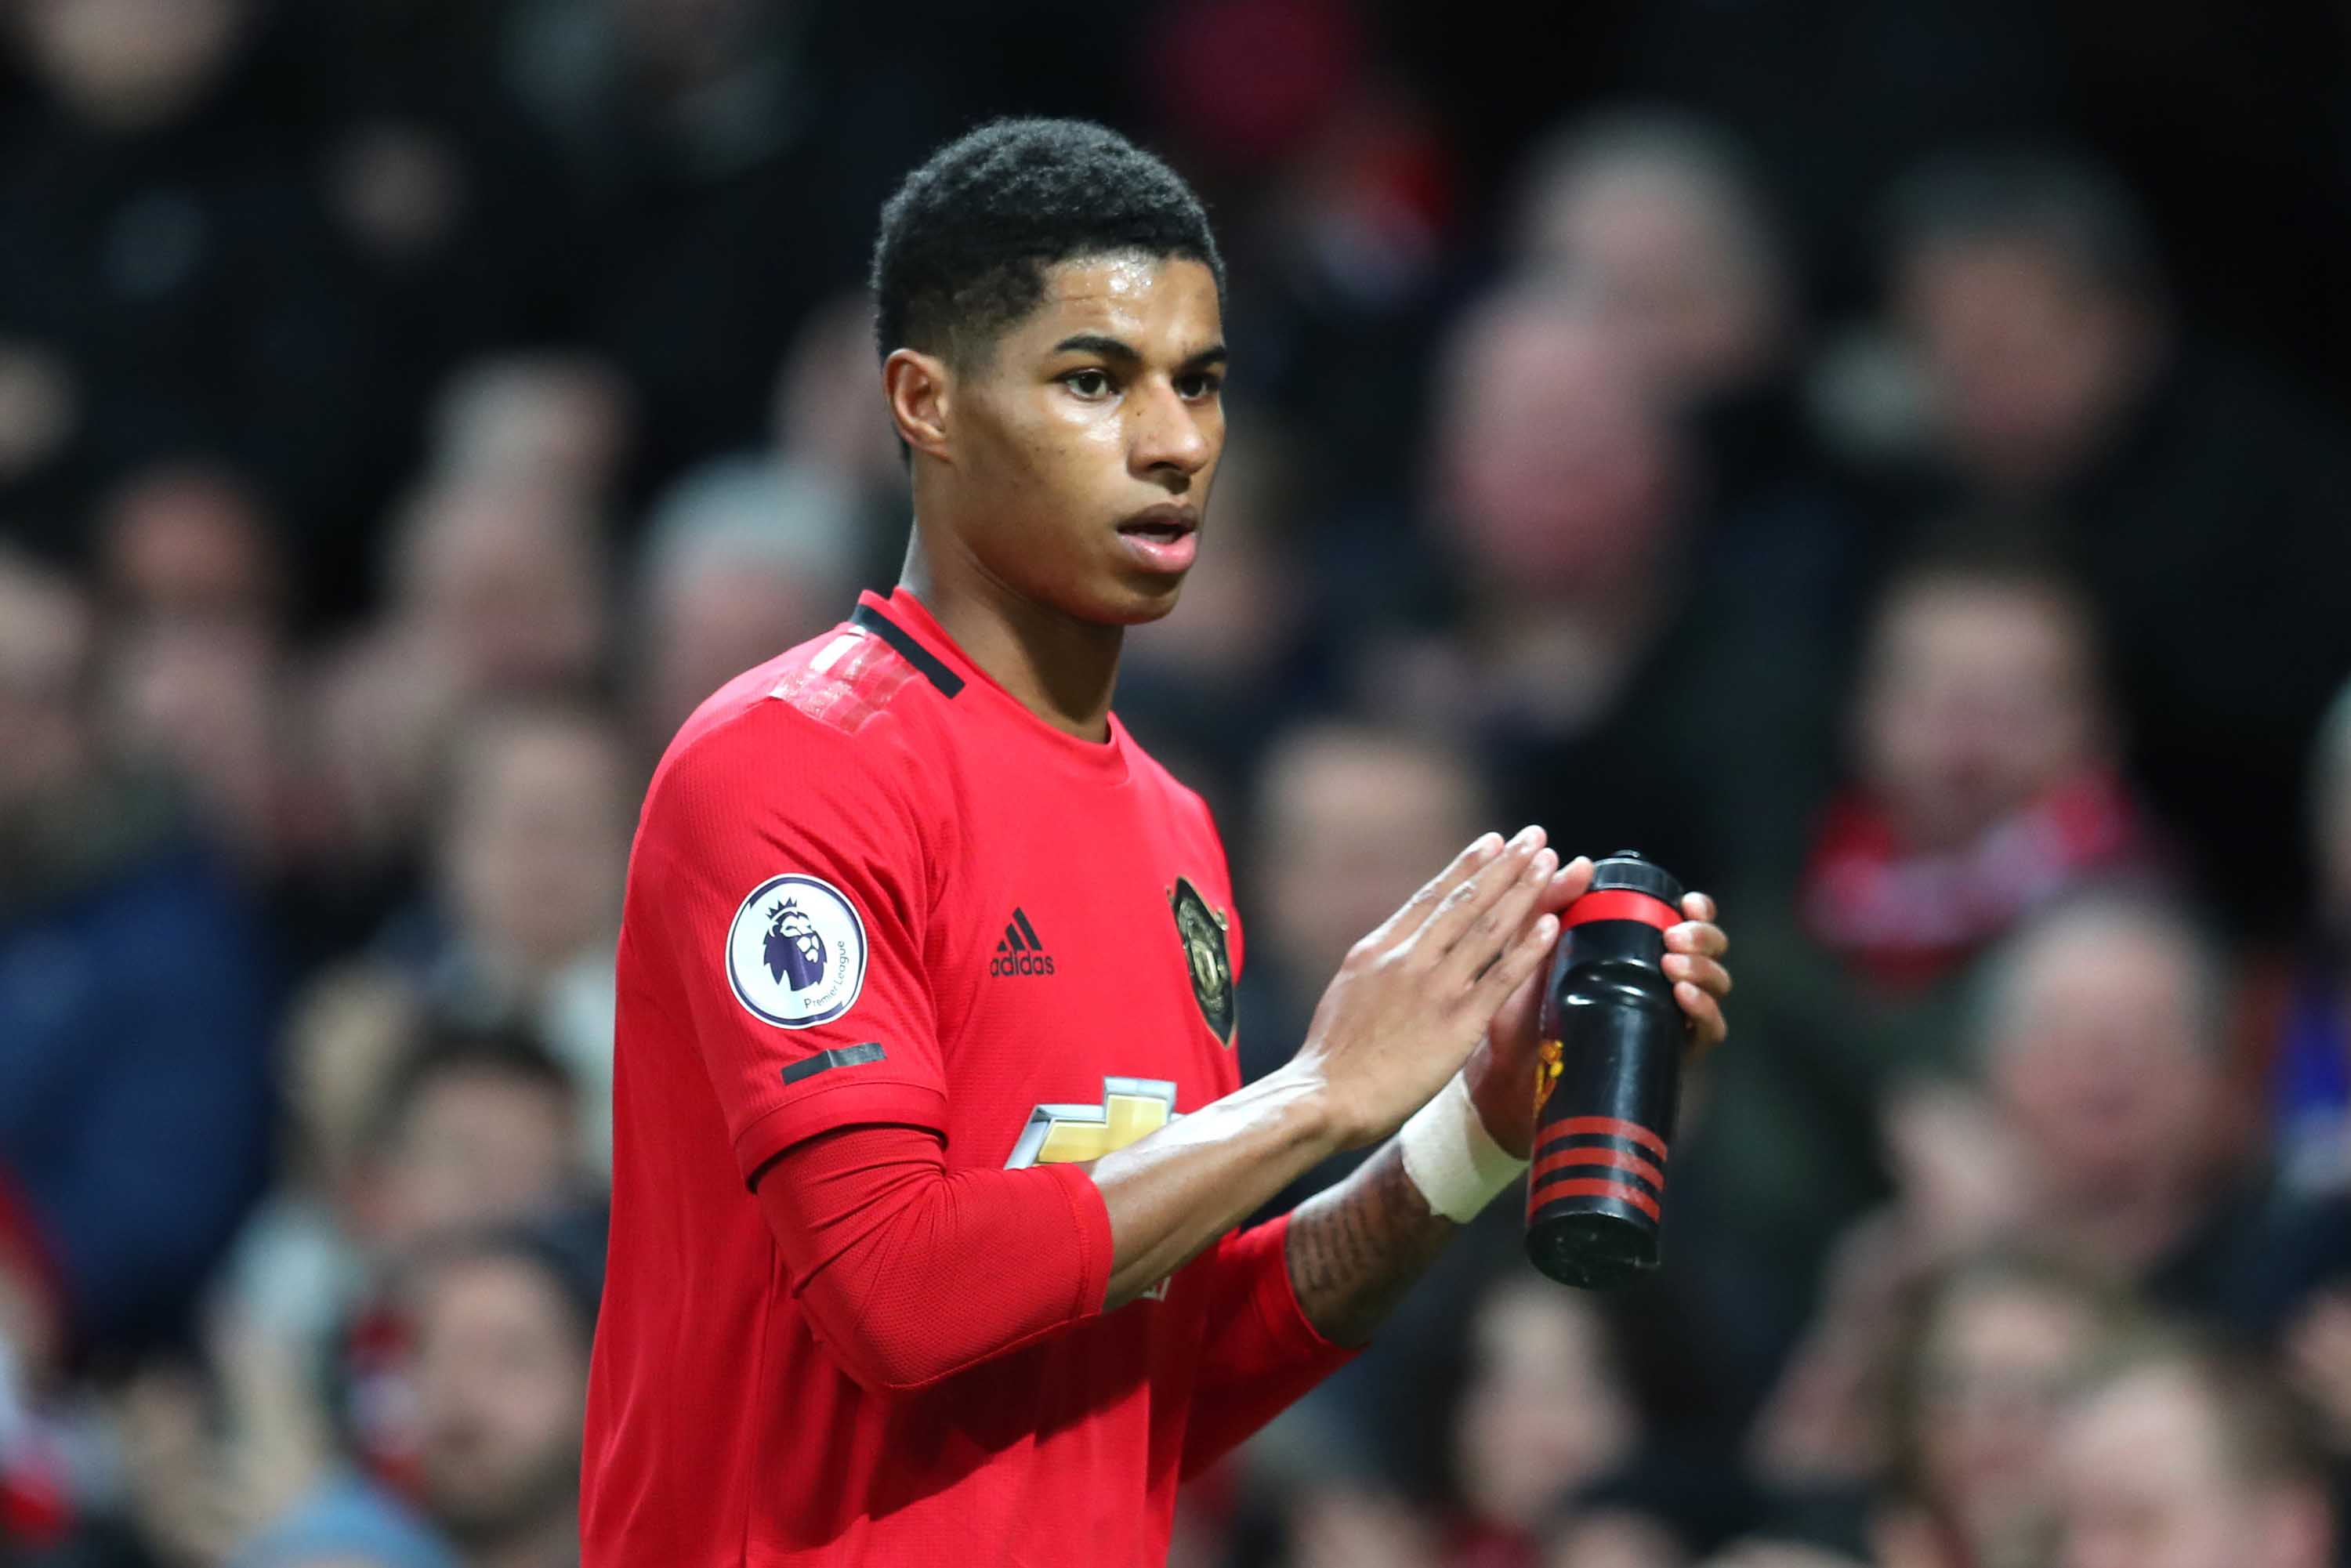 Marcus Rashford of Manchester United is pictured during a match in Manchester, England, on January 11.